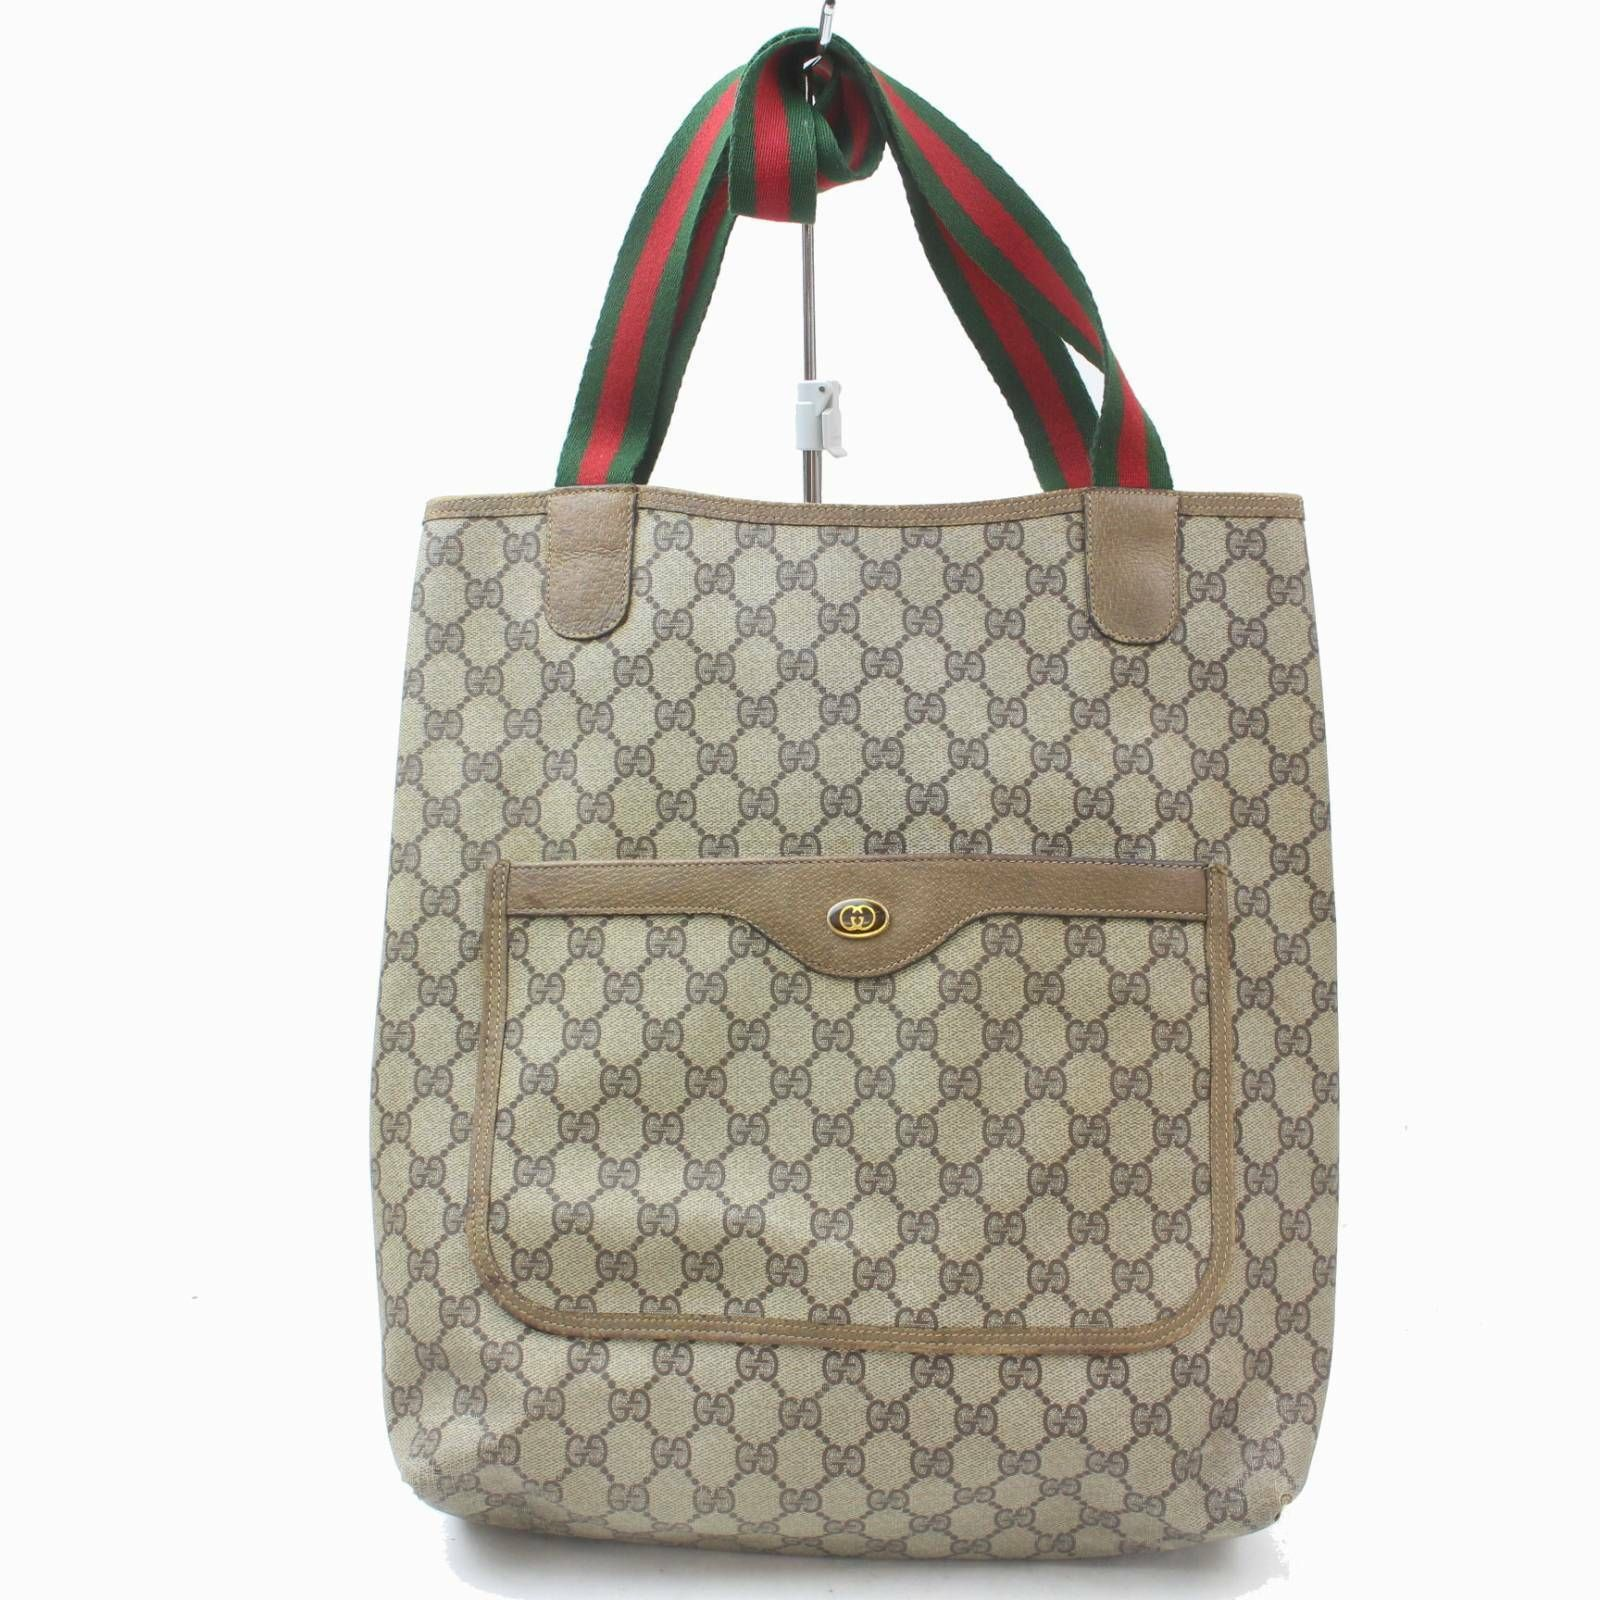 2d7930ef5e9a Details about Authentic Gucci Tote Bag Browns PVC 990138 in 2019 ...